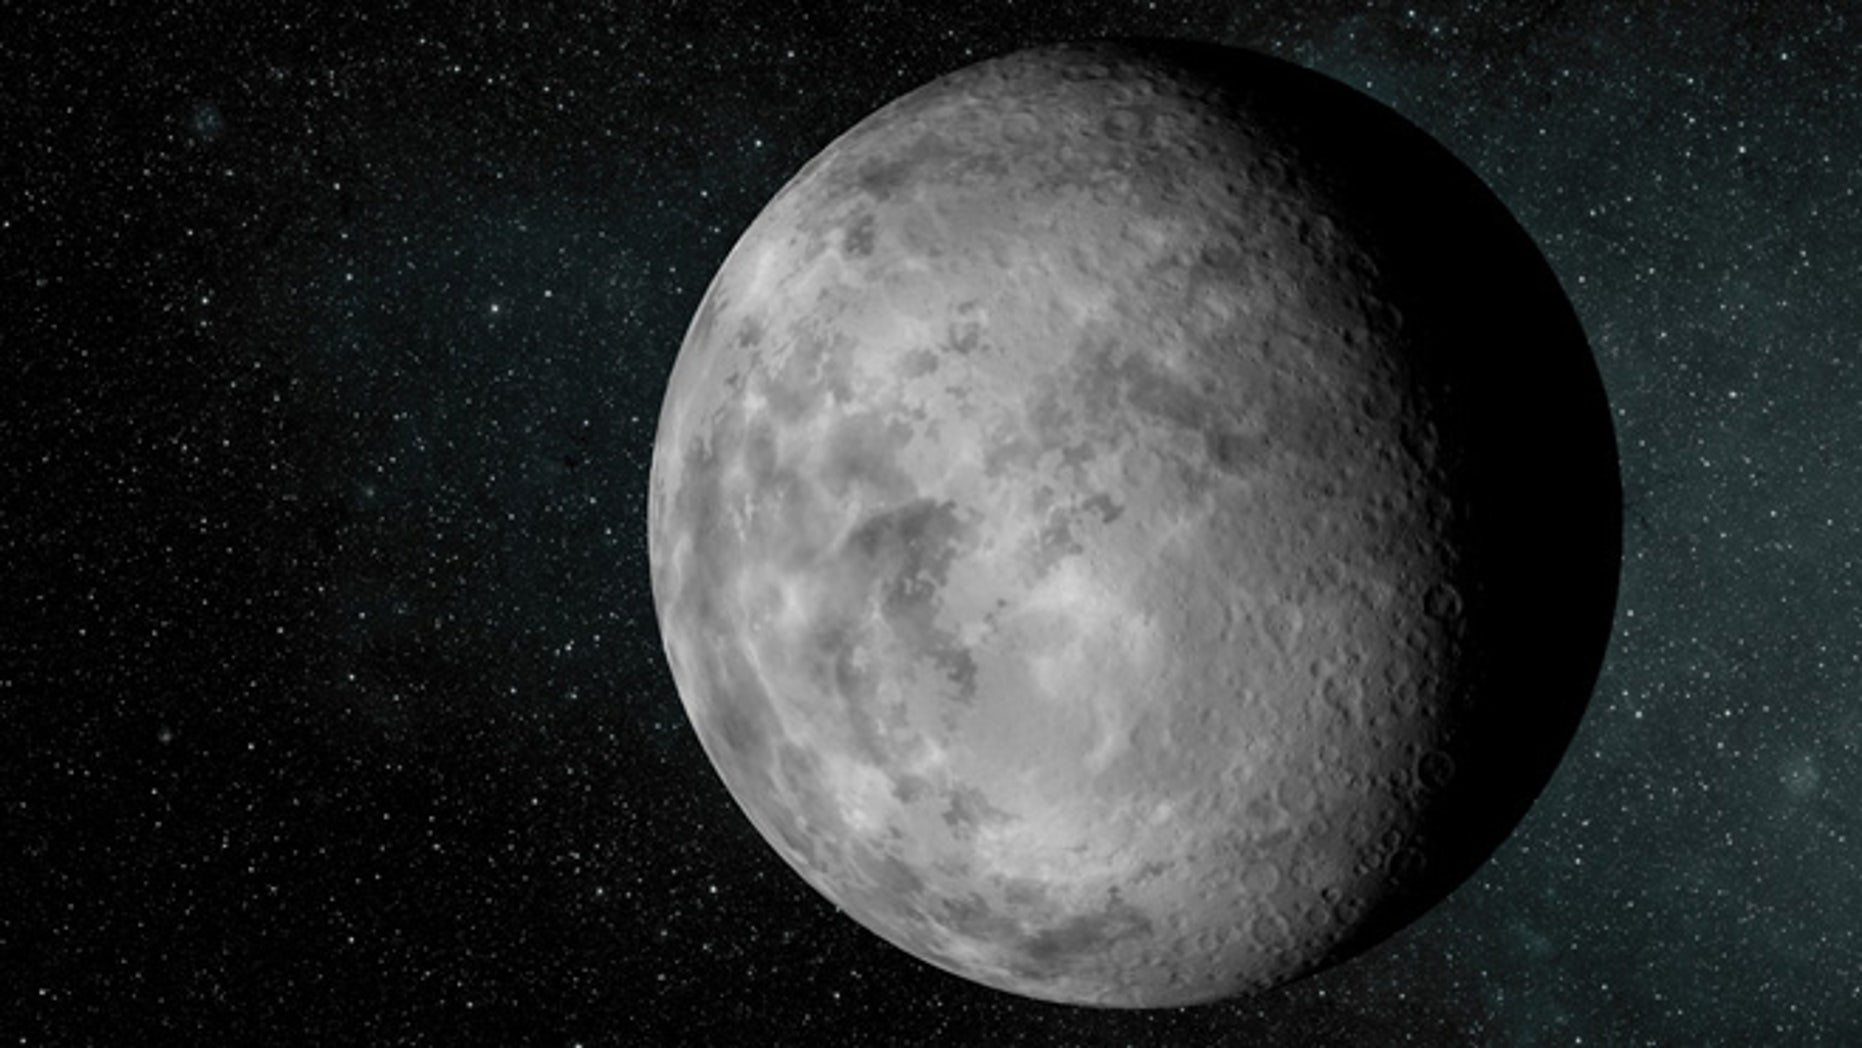 An artist rendering of the newfound planet known as Kepler-37b. The planet is about the size of our moon and is the smallest known exoplanet, according to a new study.